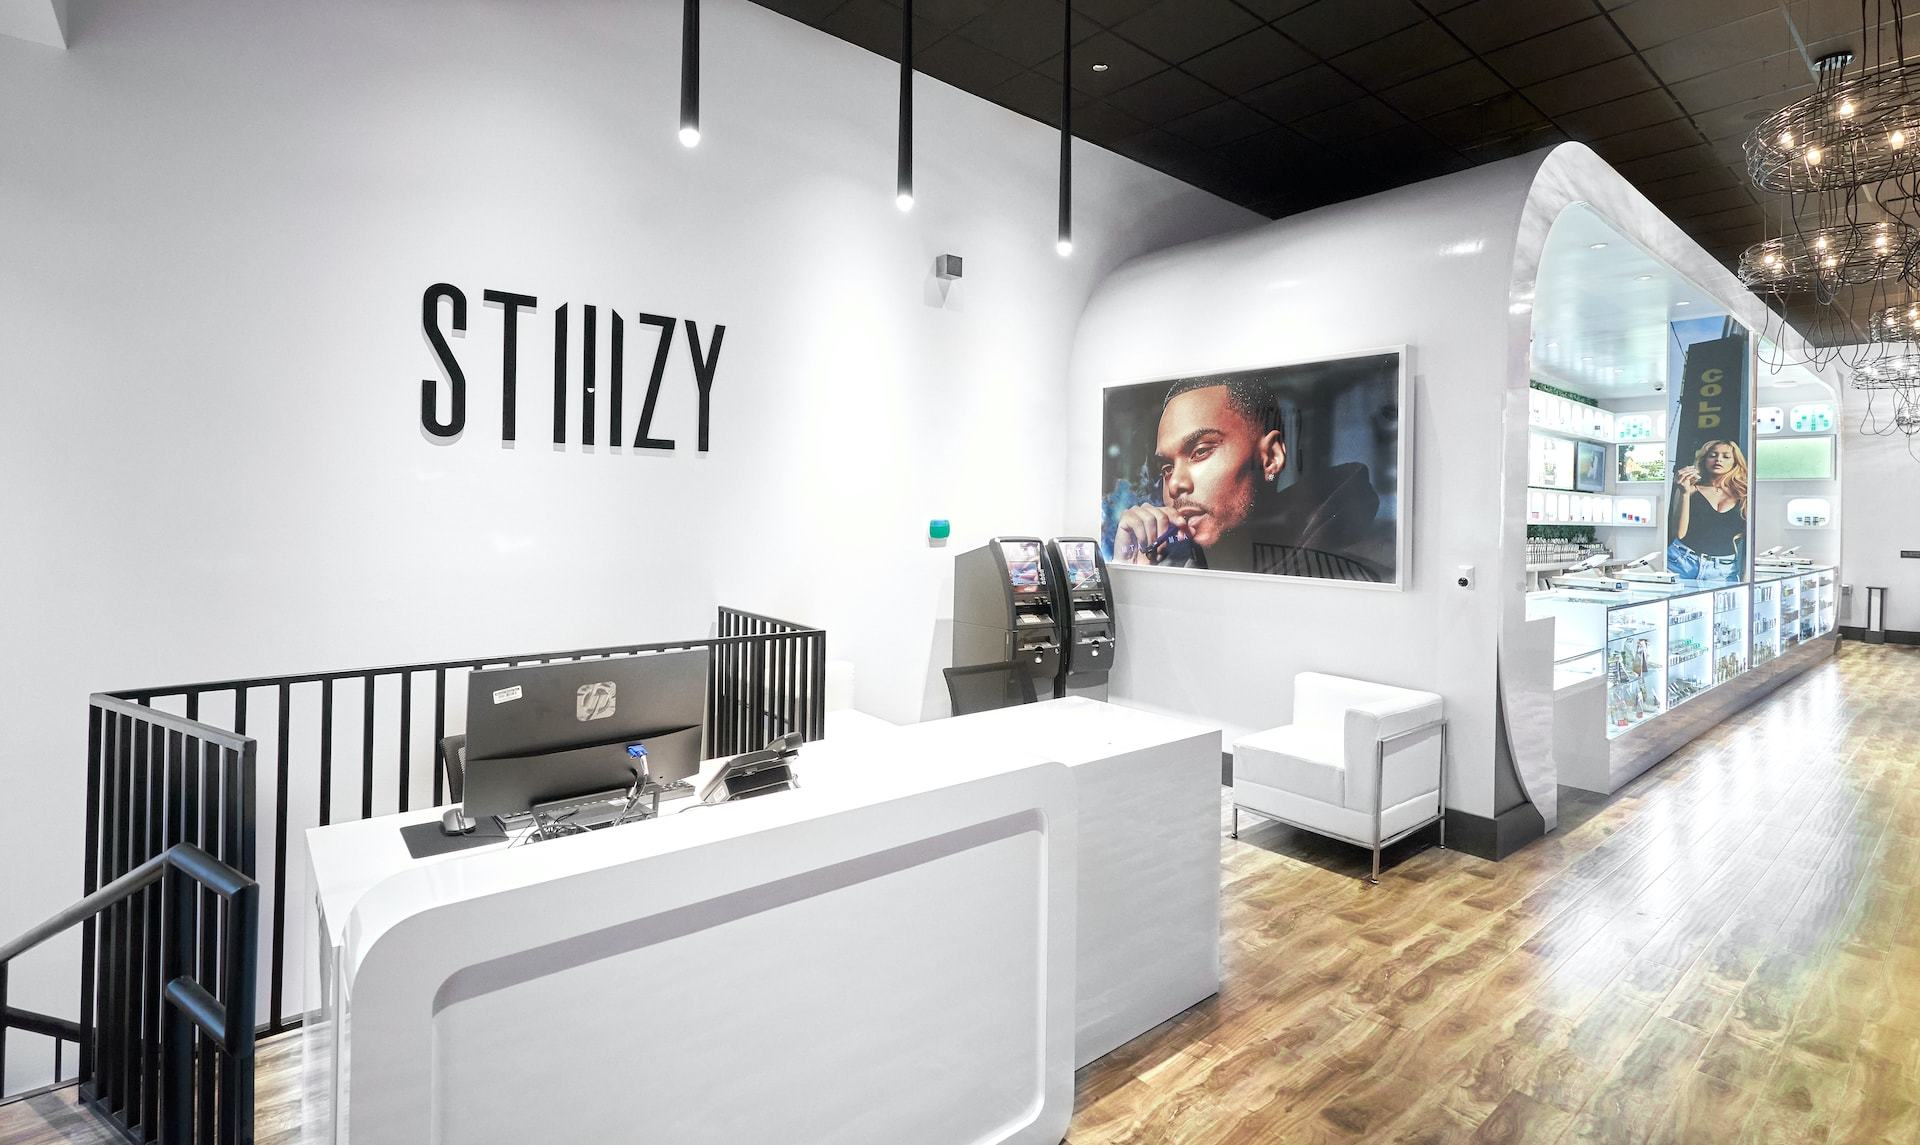 STIIIZY UNION SQUARE PAVING A PATH FOR LATINA WOMEN IN CANNABIS